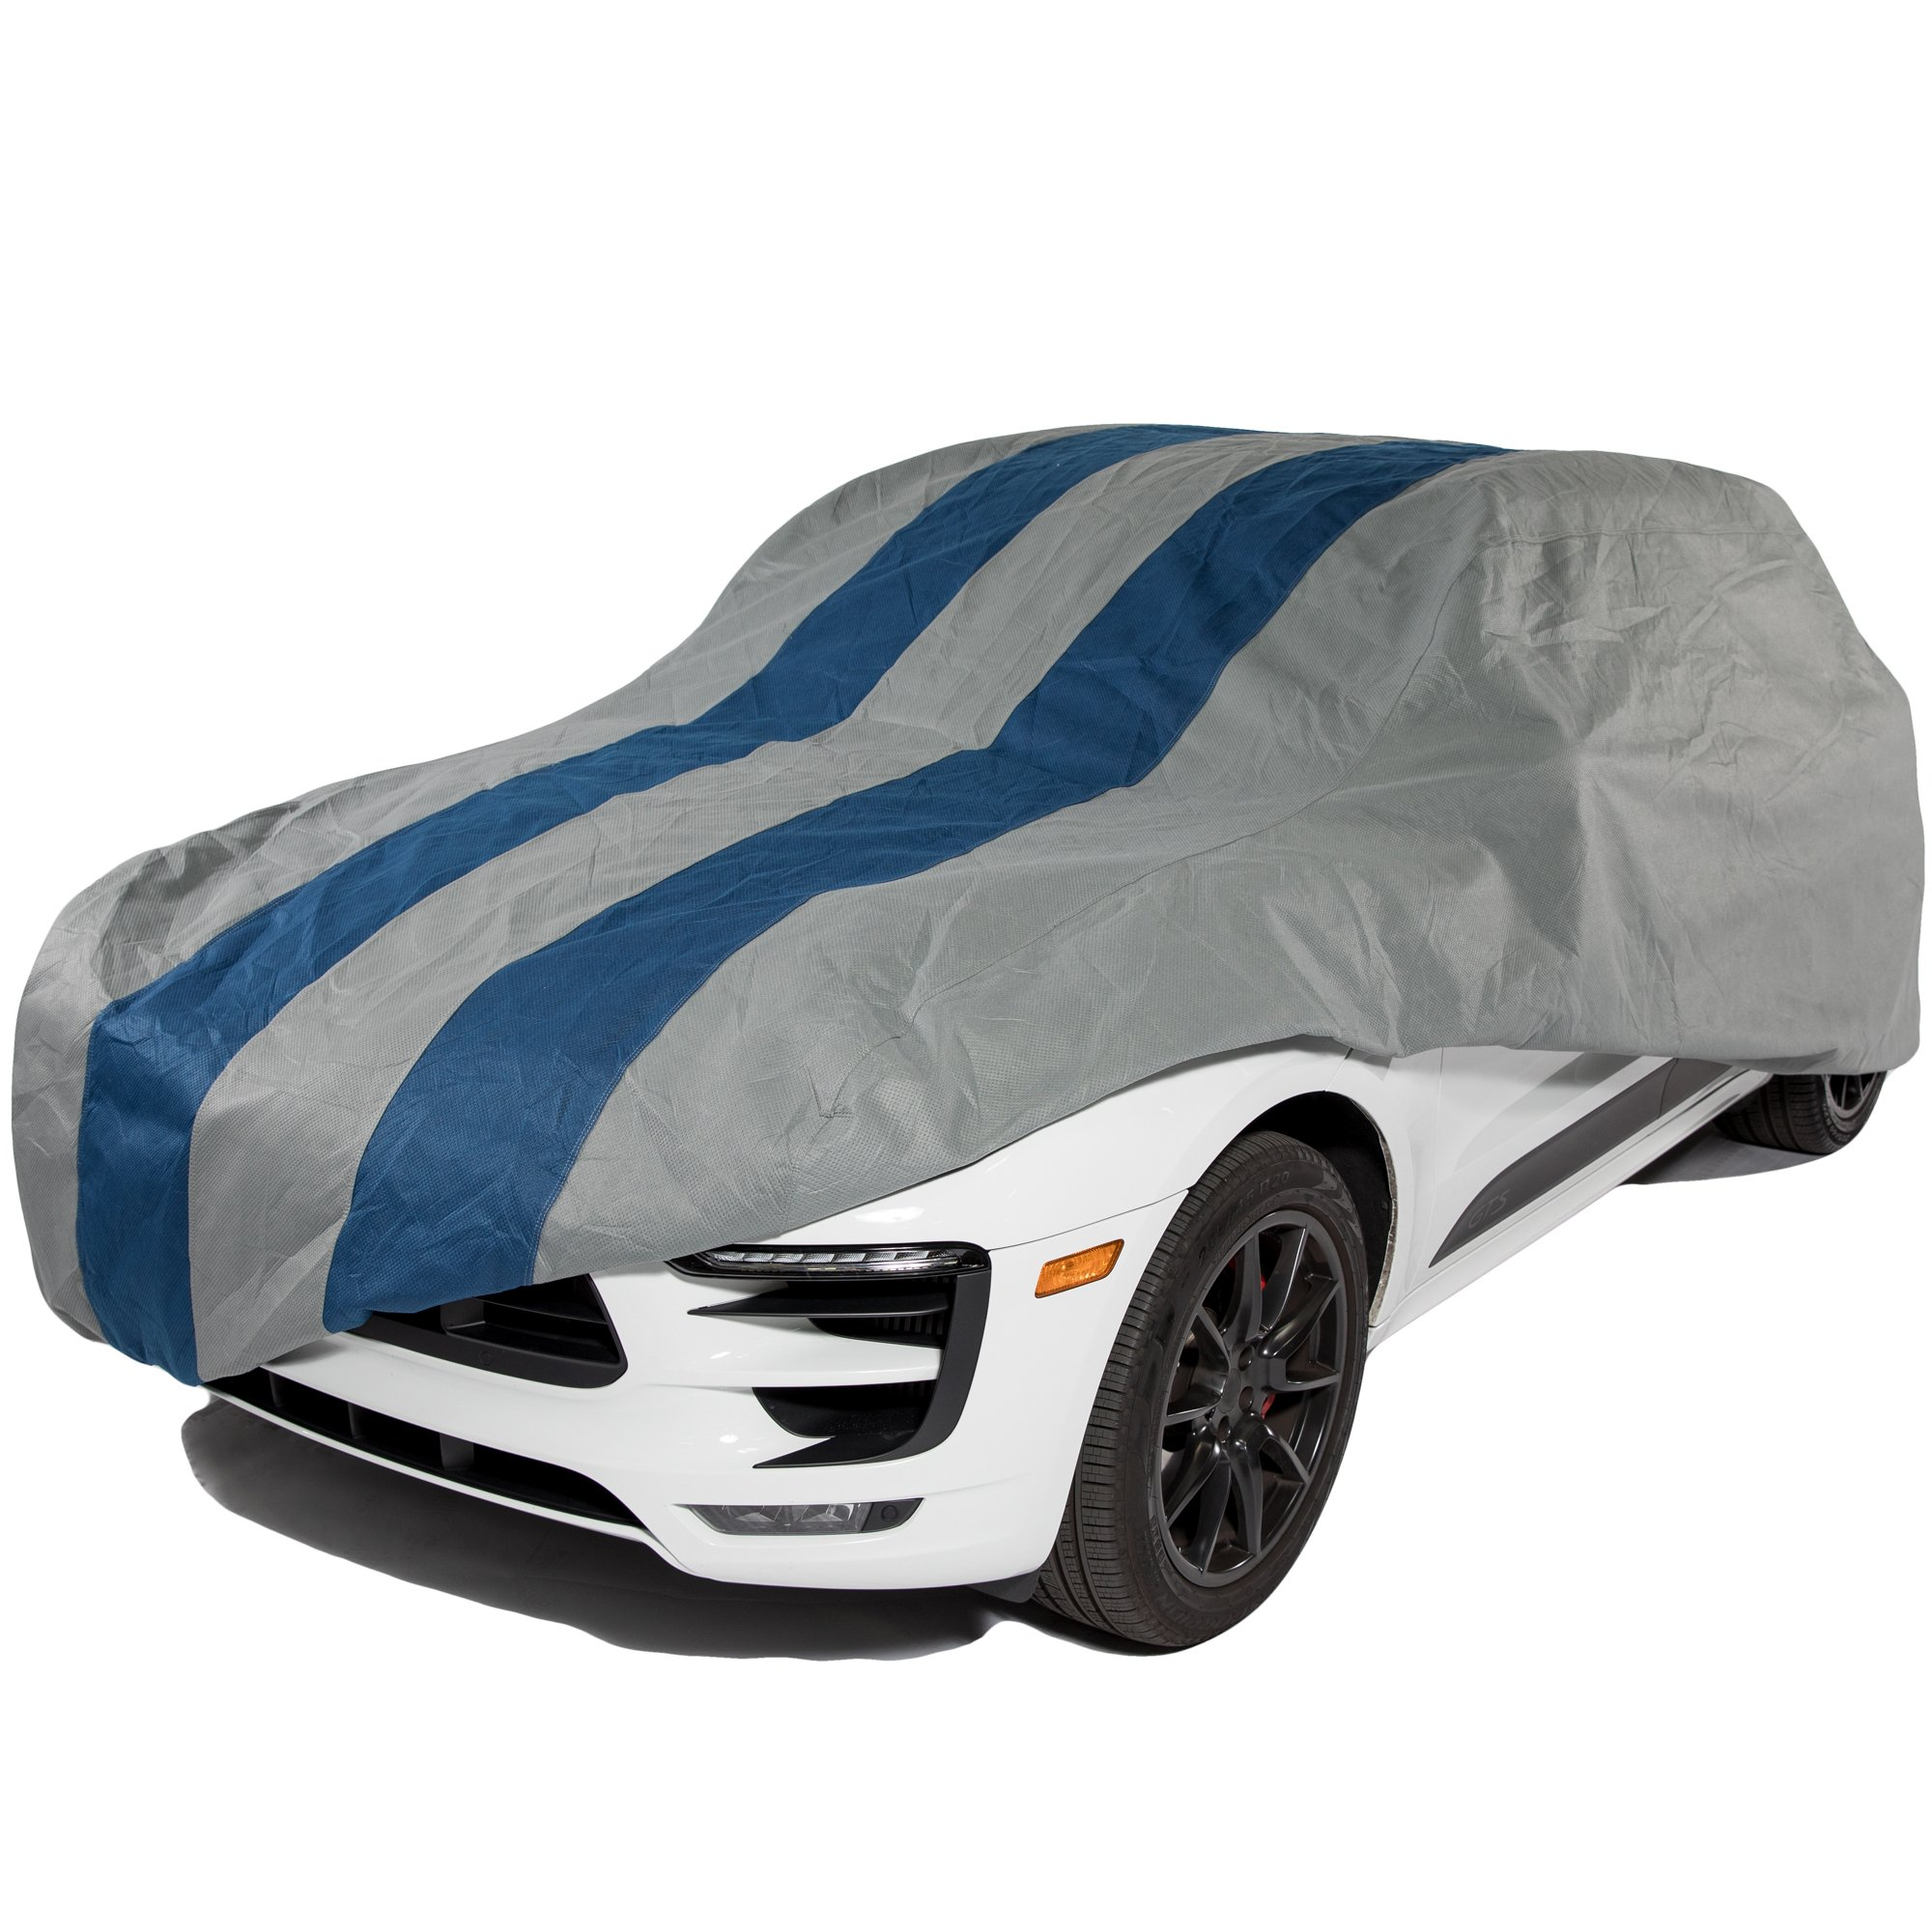 Duck Covers Rally X Defender Truck Cover, For Suvs Full Size Trucks Shell Bed Cap up to 19 ft. 1 in. L